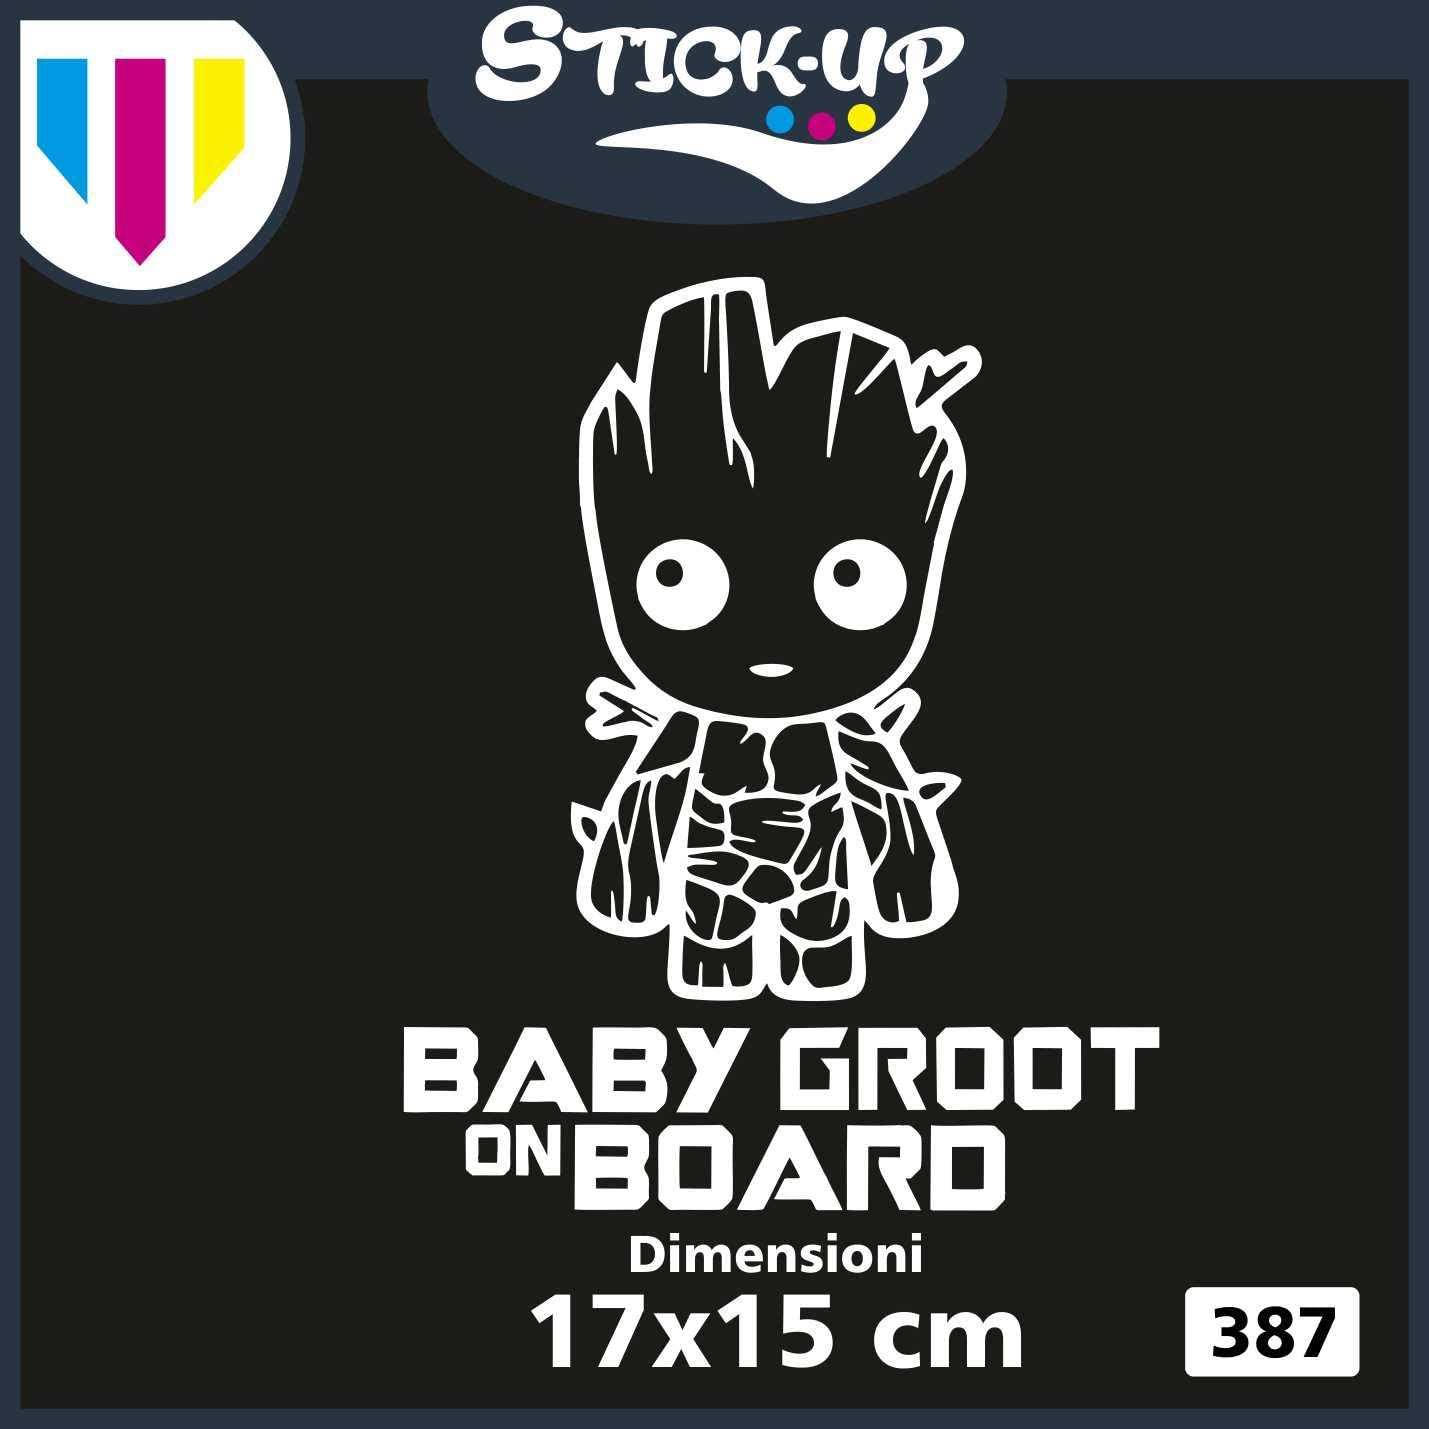 Dimensions 20x25 cm Baby on Board Tuning Sticker for Car Motorcycle Custom Decal Child Child On Board Bianco Stick-up sticker logistic sticker Groot -Baby Groot ON Board